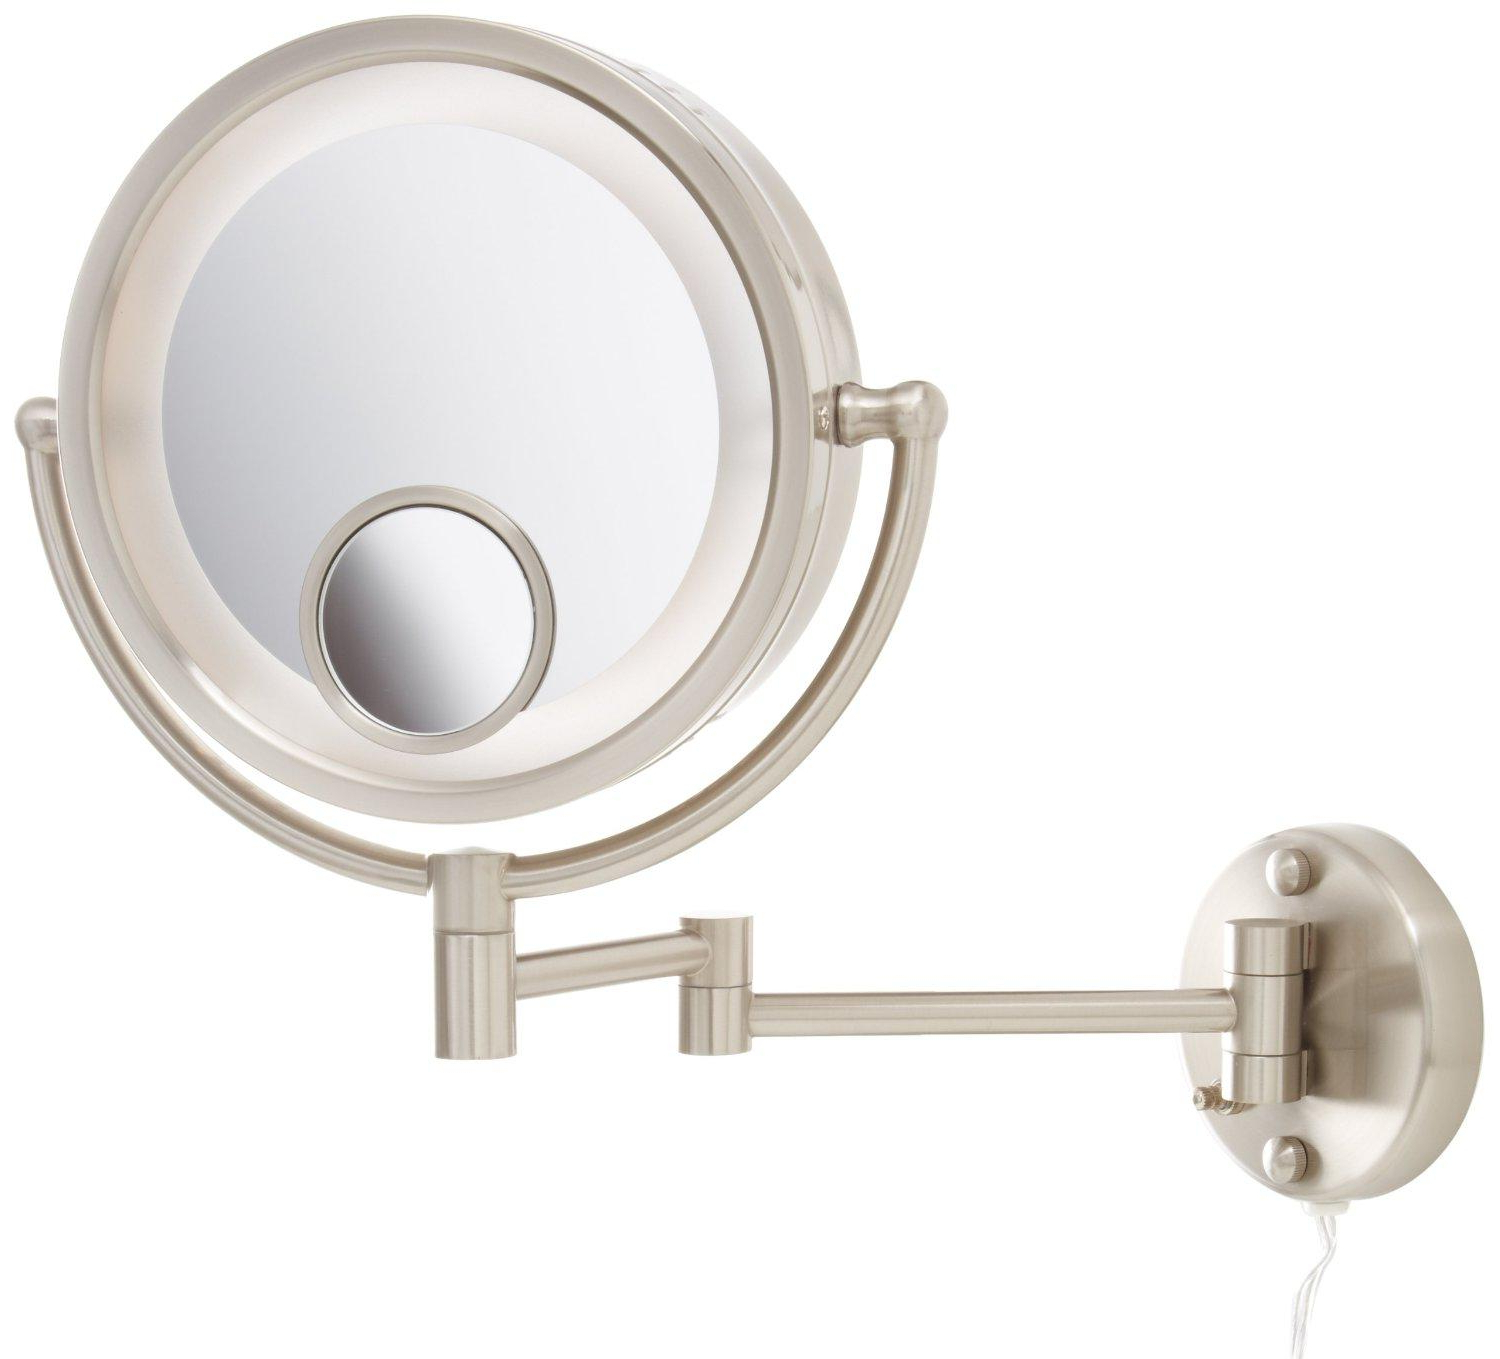 Jerdon Hl8515n Lighted Wall Mount Makeup Mirror With 7x And 15x Magnification, Nickel Finish, (View 2 of 20)